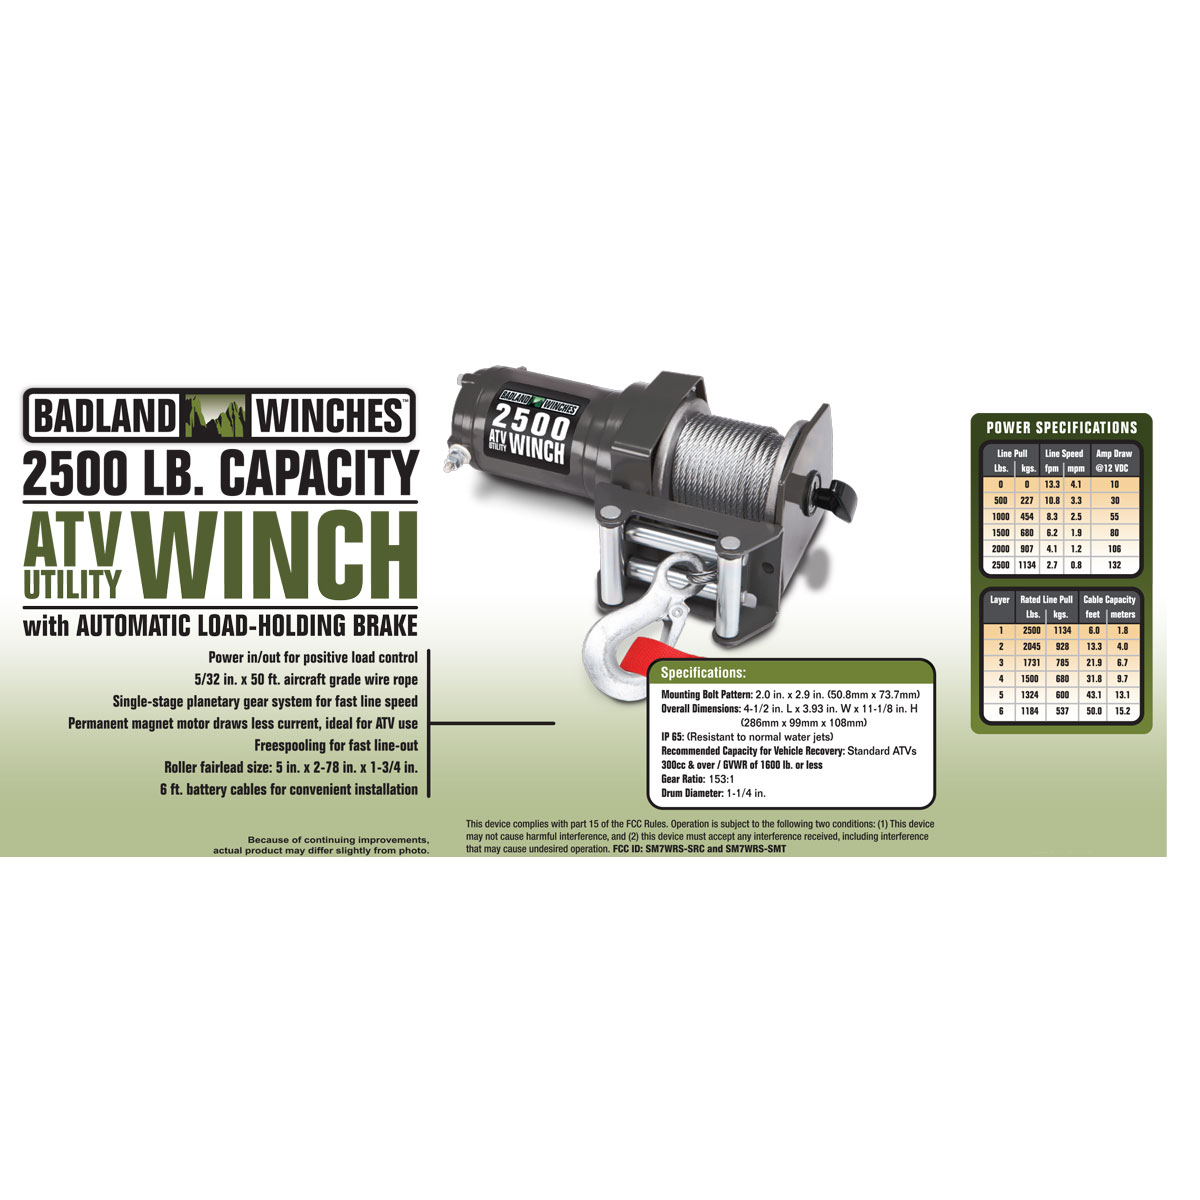 badland winch wiring diagram 2500 lb. atv/utility electric winch with wireless remote ... 2500 lb badland winch wiring diagram